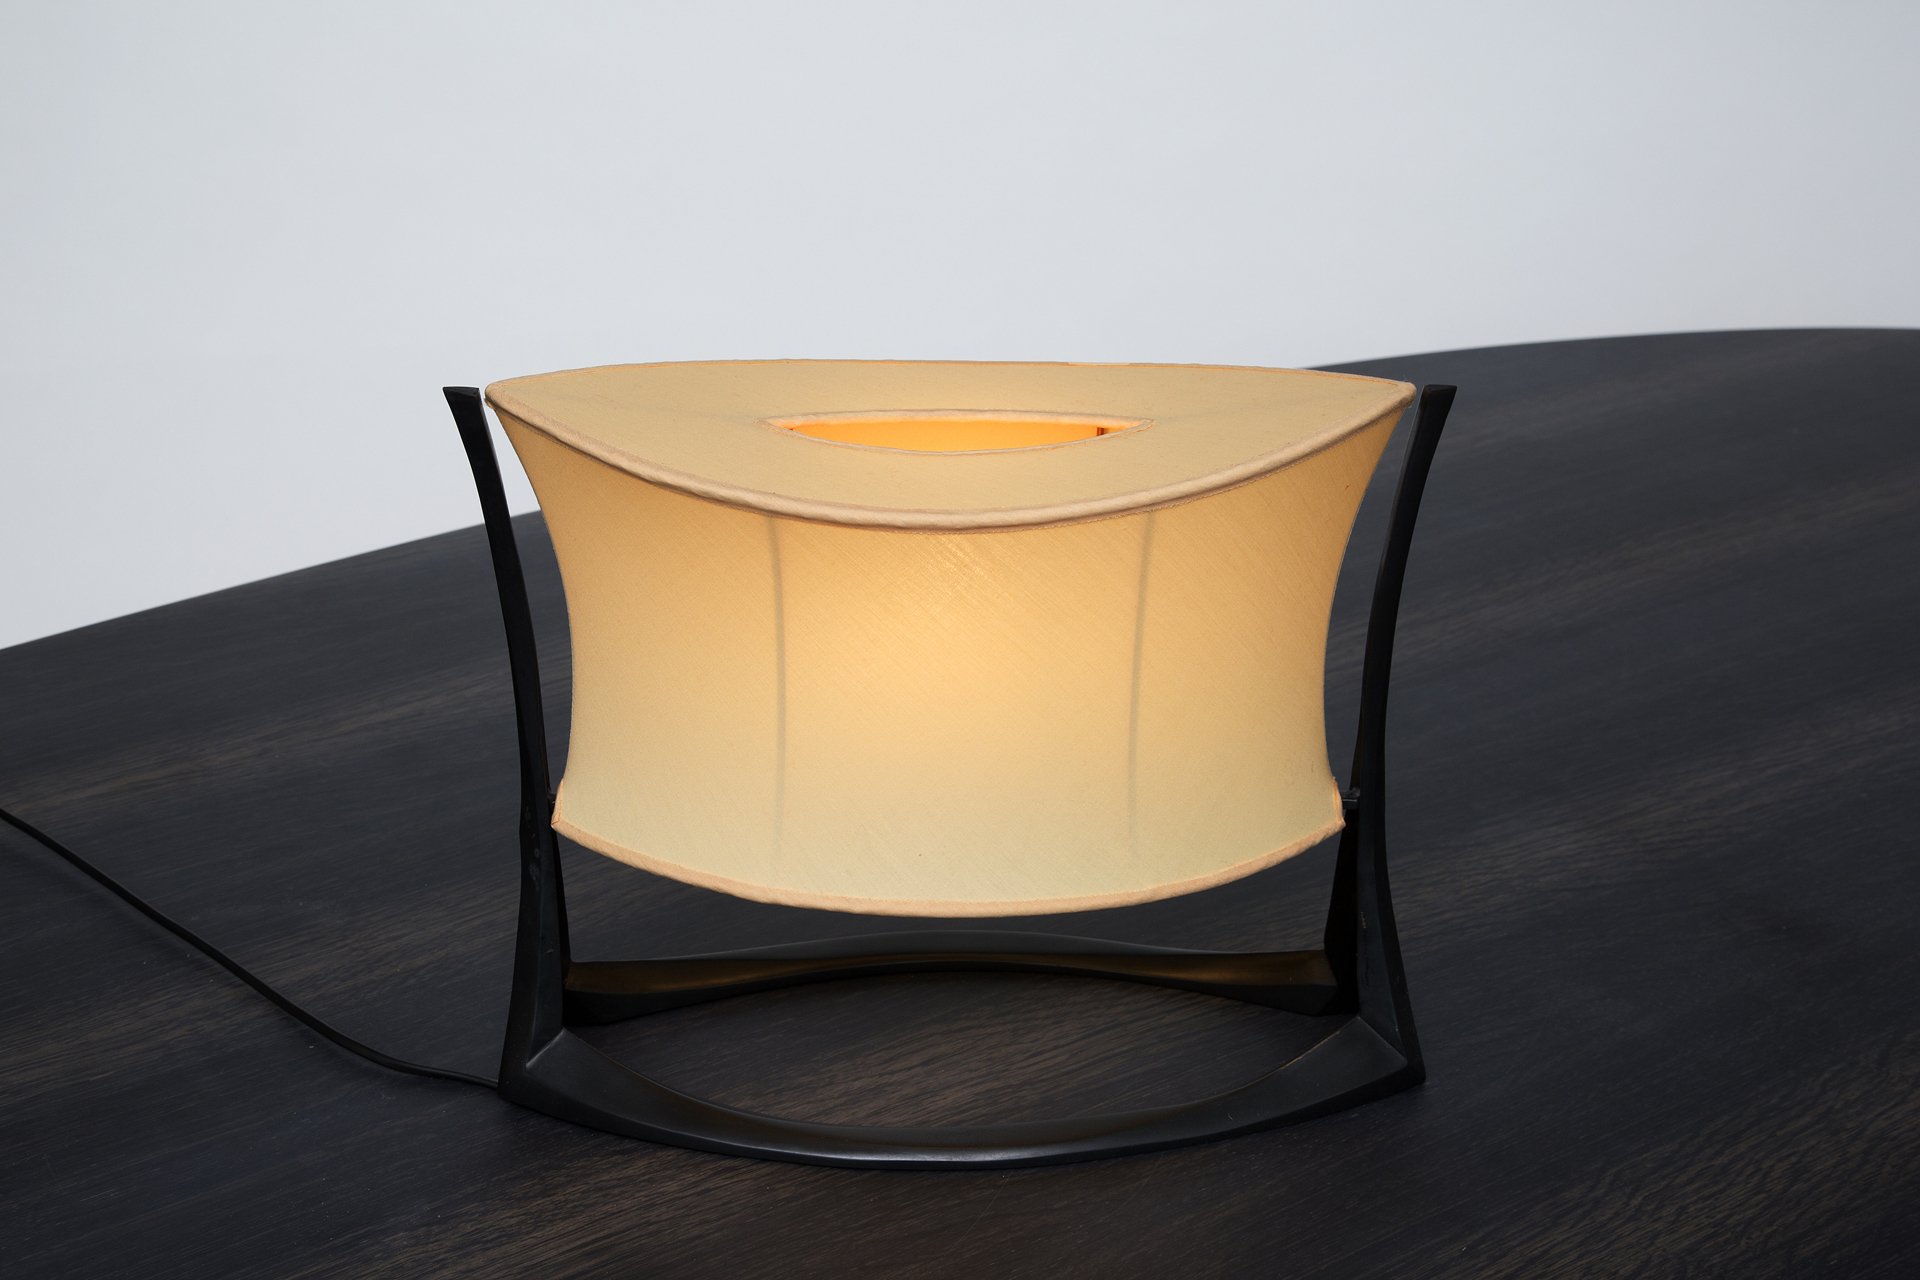 Table Lamp by Anasthasia Millot